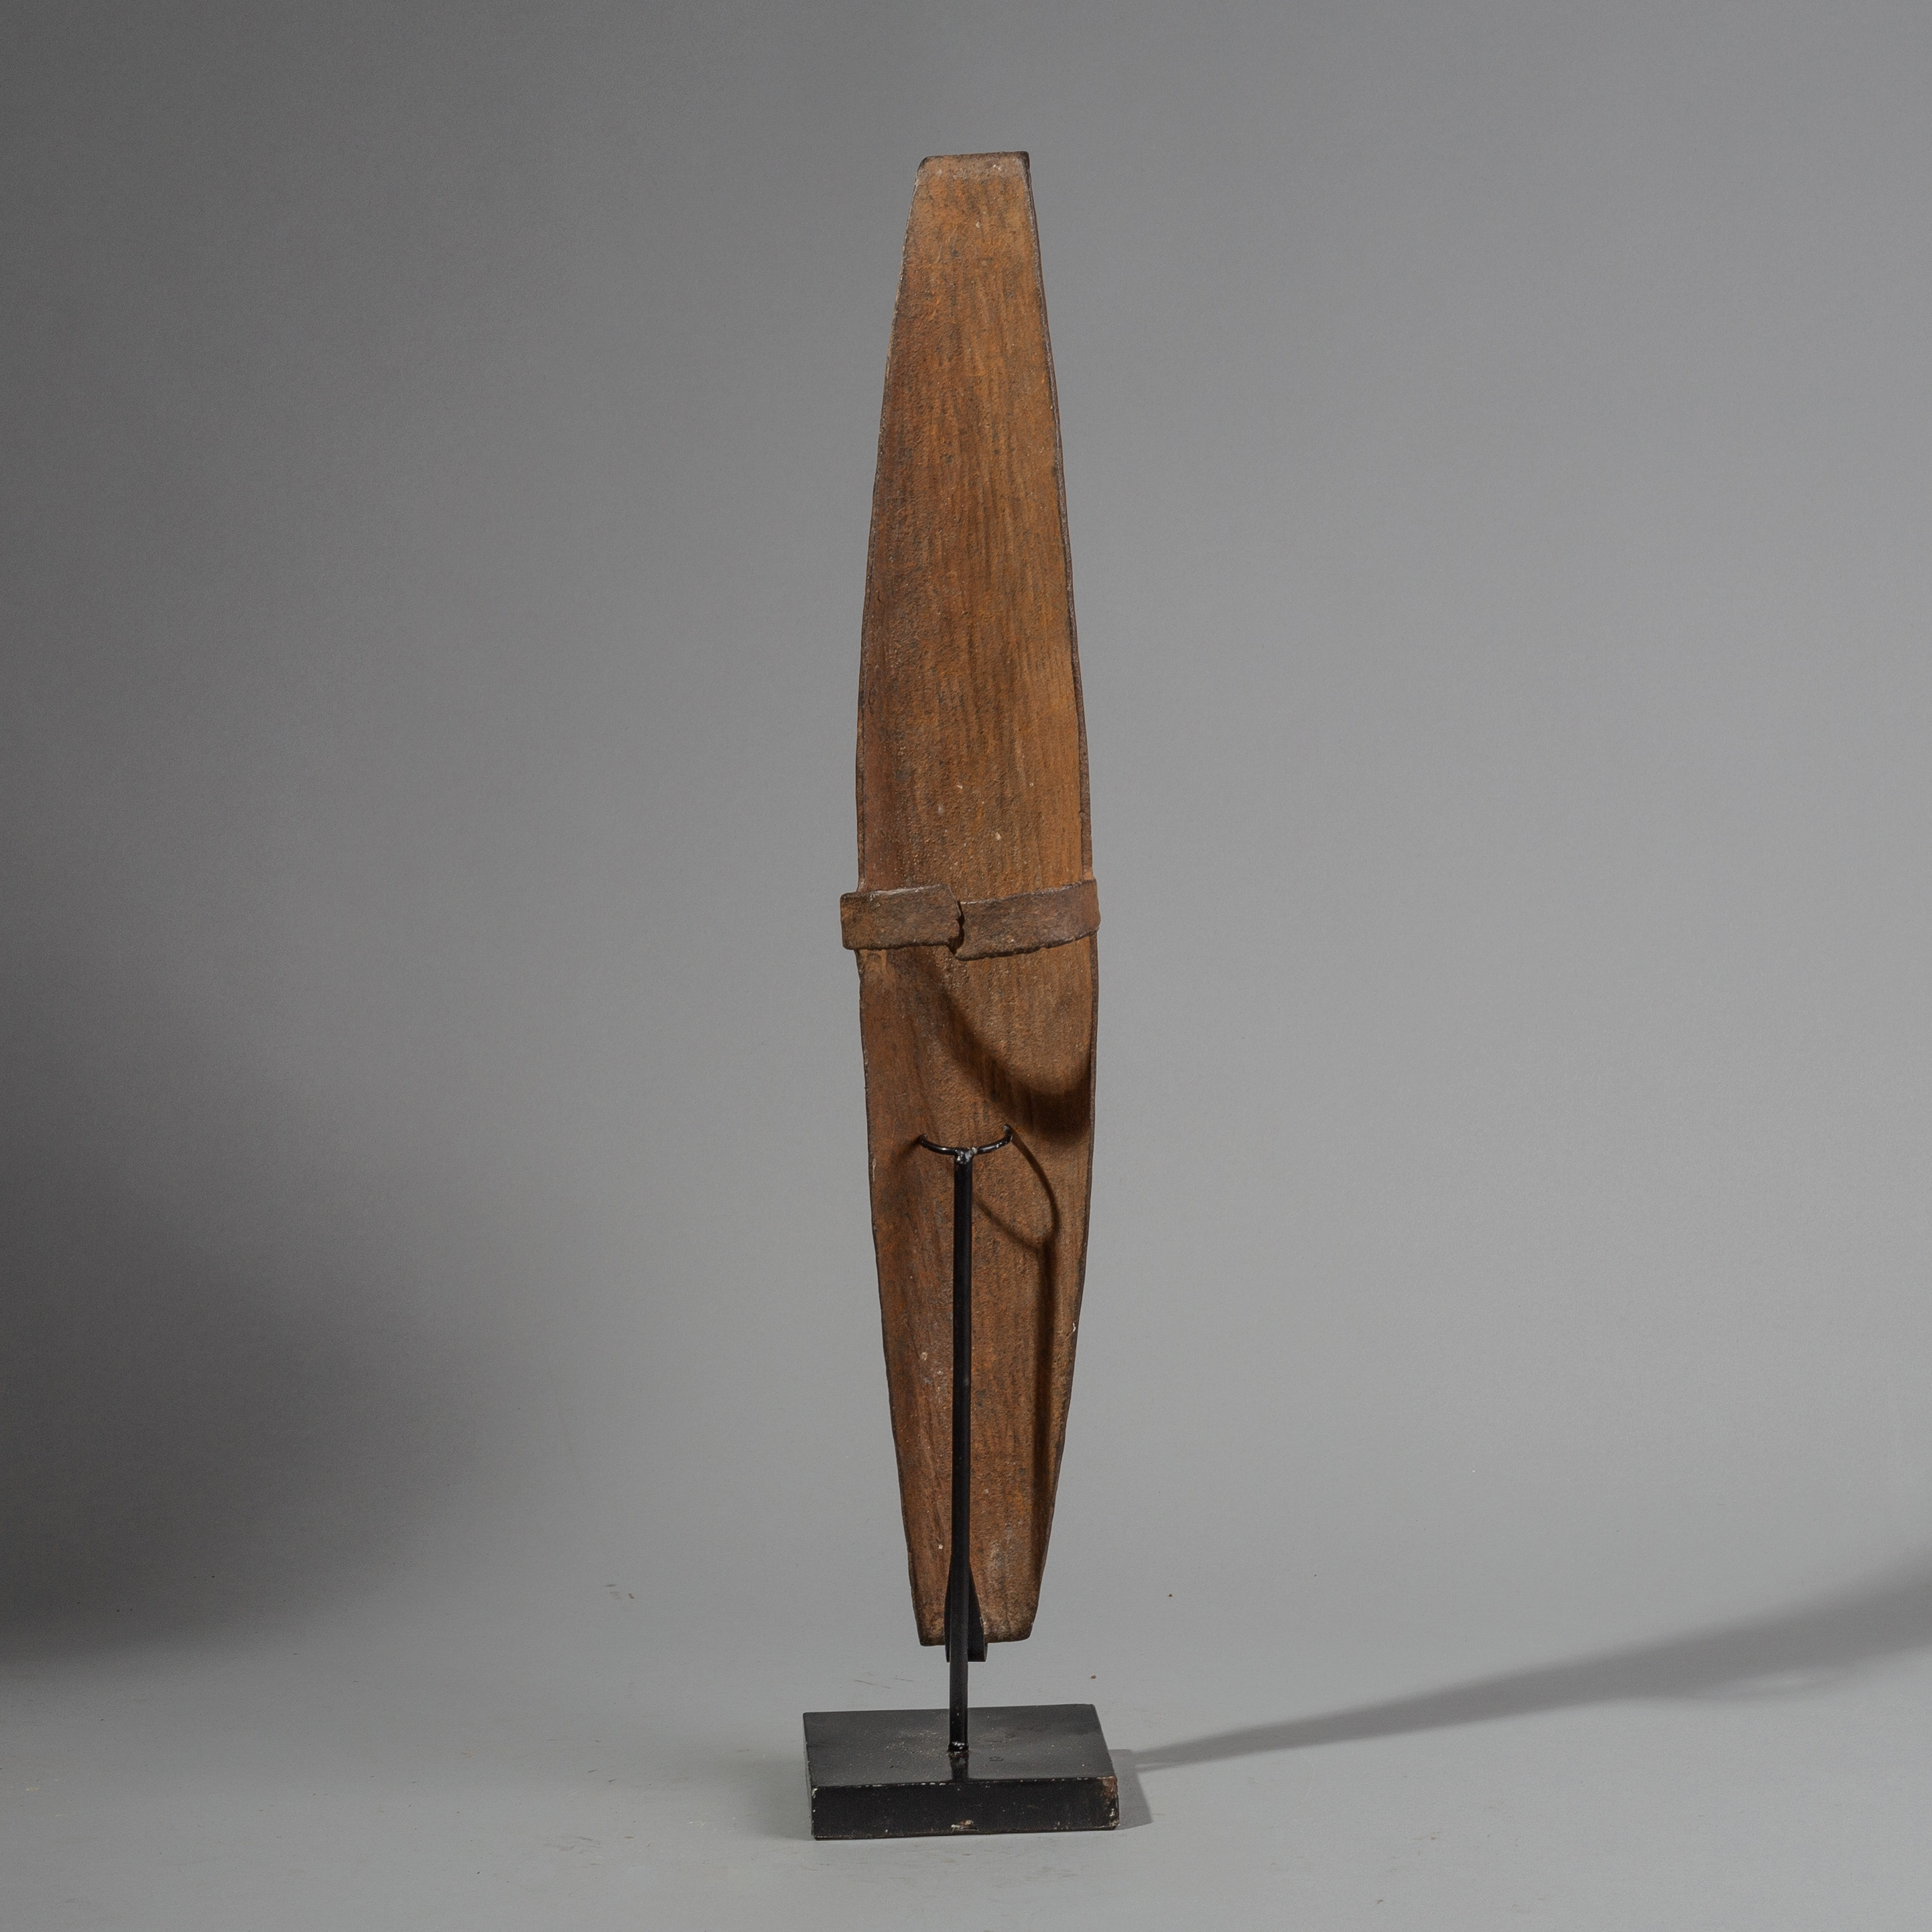 SD A SIMPLE SOMBA IRON PARRYING SHIELD FROM NORTHERN TOGO ( No 1441 )